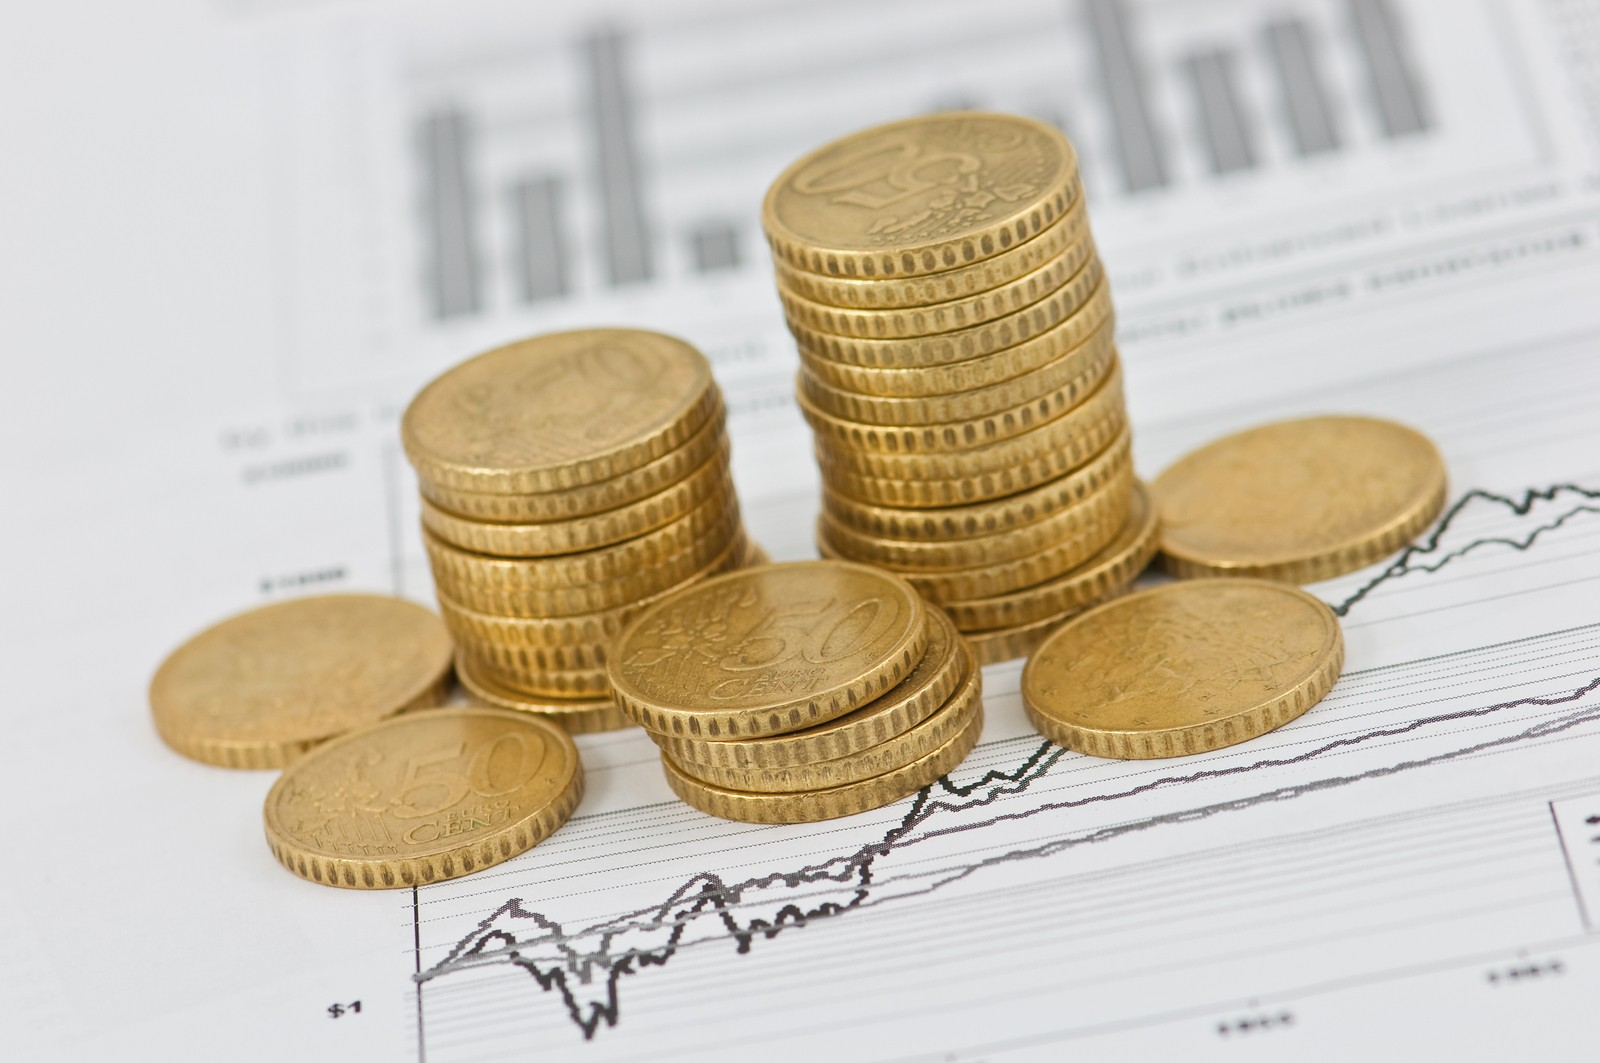 gold coin graph on the business document